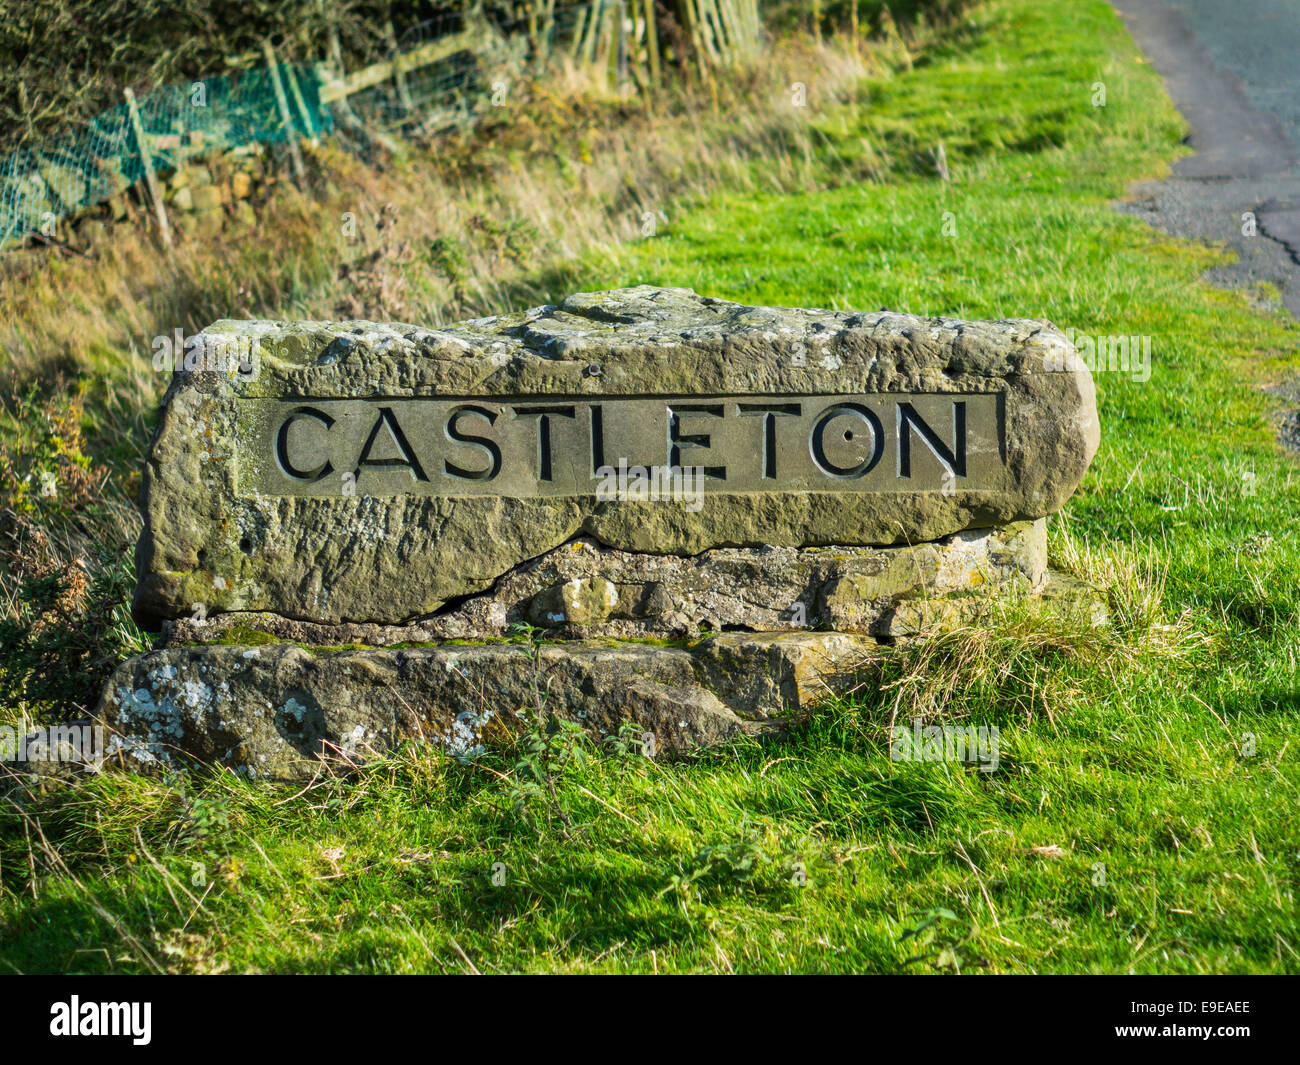 A carved stone sign for the village of Castleton North Yorkshire England UK - Stock Image